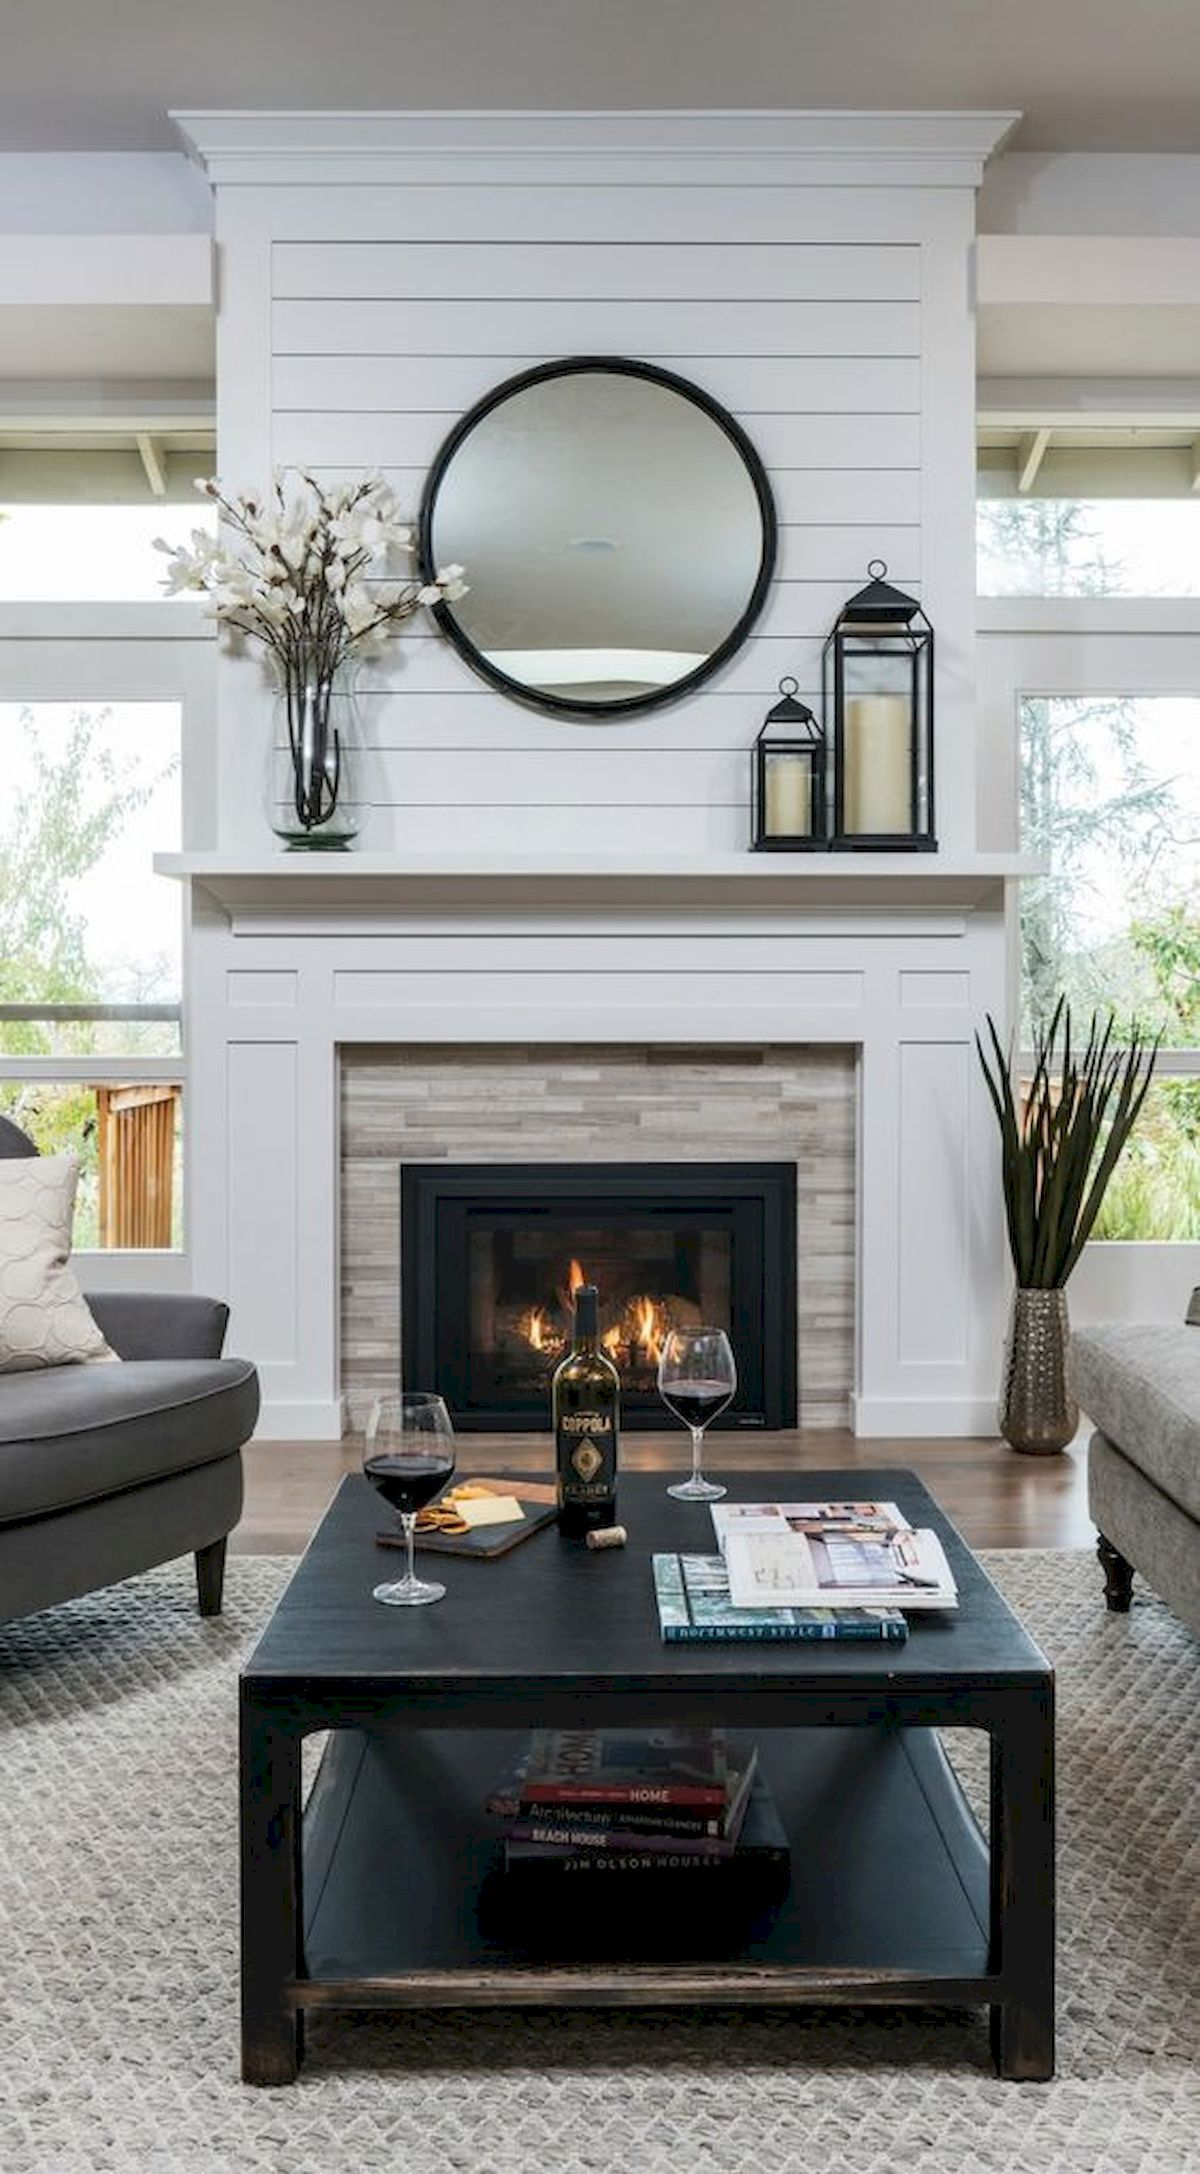 33 Gorgeous Farmhouse Fireplace Decor Ideas And Design images